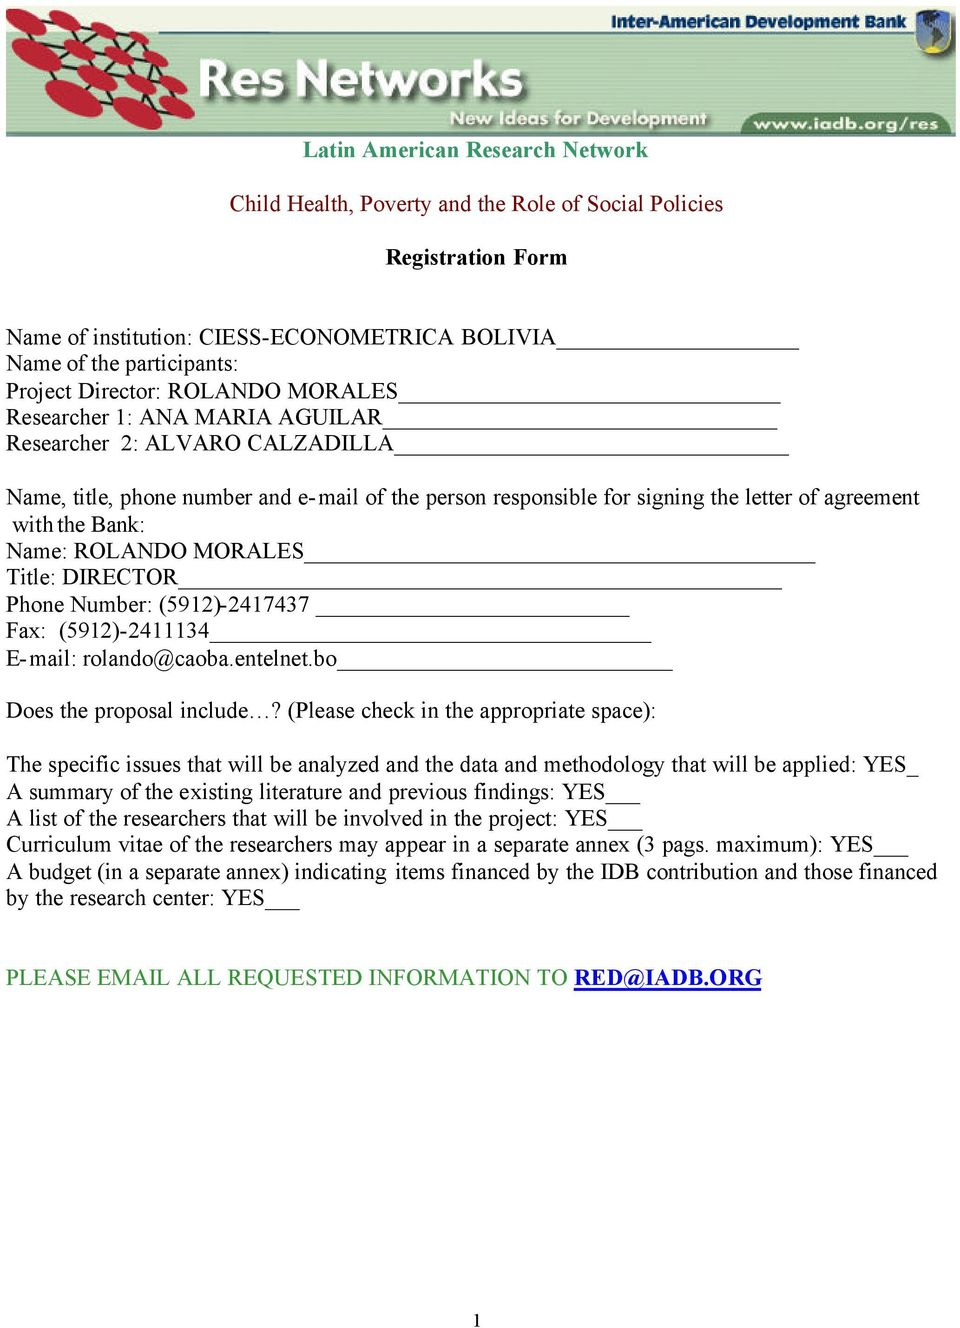 ROLANDO MORALES Title: DIRECTOR Phone Number: (5912)-2417437 Fax: (5912)-2411134 E-mail: rolando@caoba.entelnet.bo Does the proposal include?